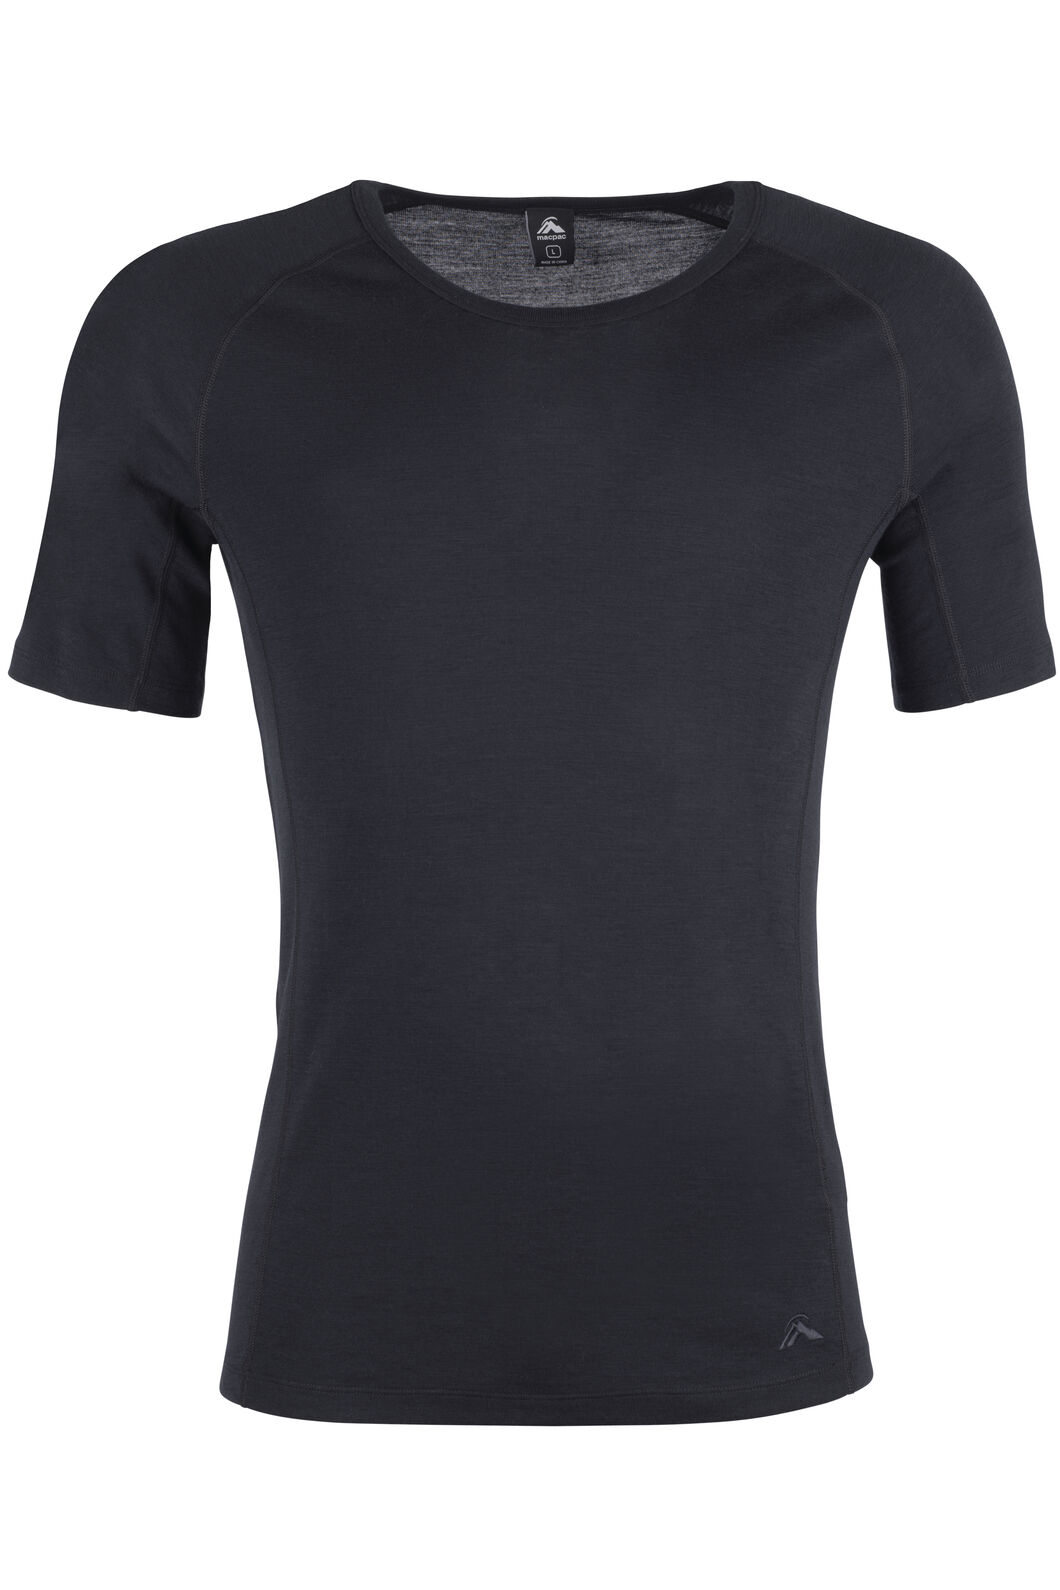 Macpac 220 Merino Short Sleeve Top - Men's, Black, hi-res